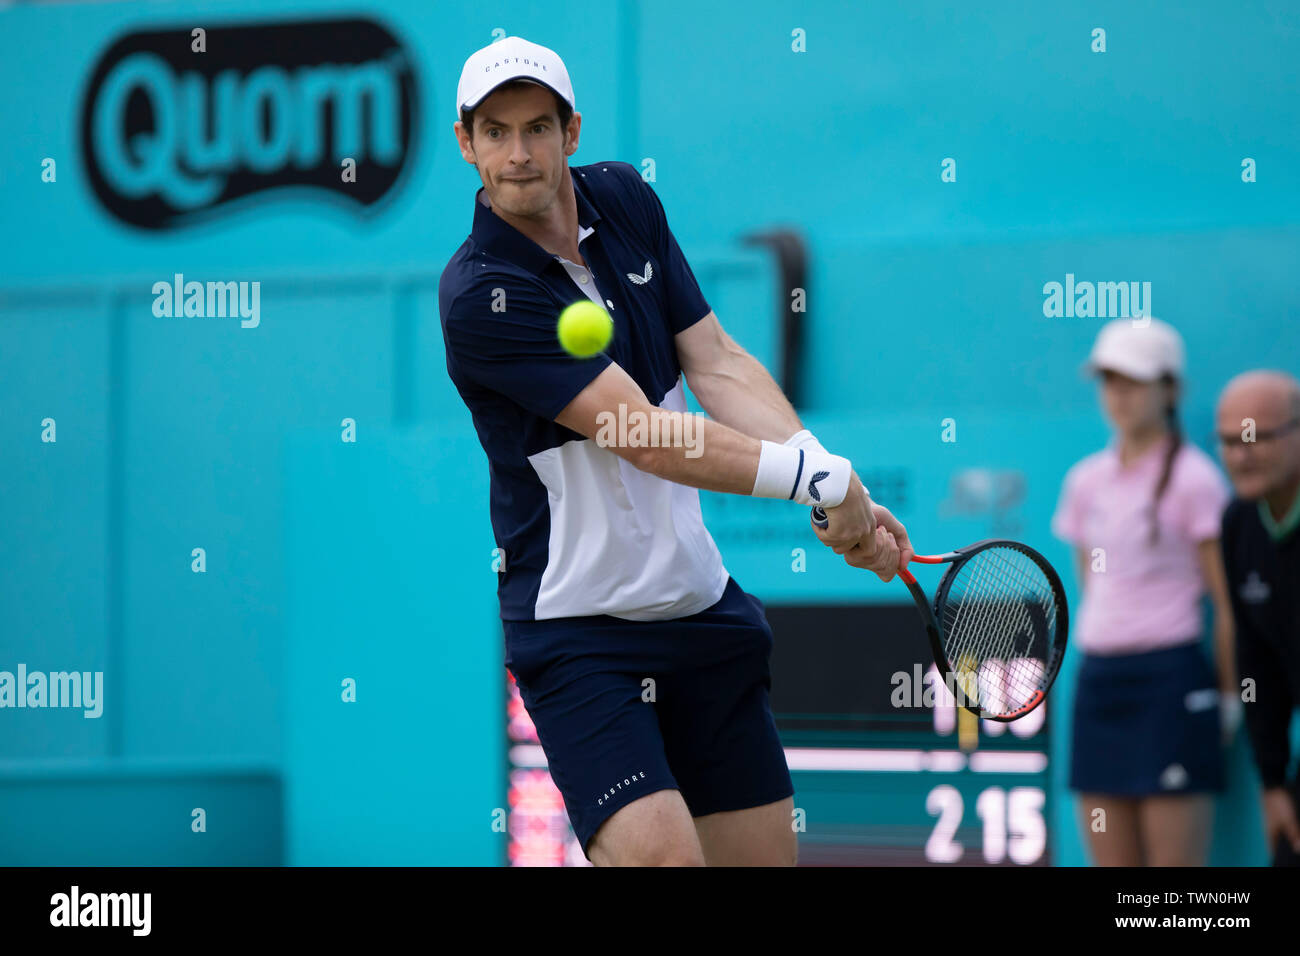 Queen Club, London, UK. 21st June, 2019. The ATP Fever-Tree Tennis Tournament; Andy Murray (GBR) with a backhand shot to Daniel Evans (GBR) and Ken Skupski (GBR) Credit: Action Plus Sports/Alamy Live News Stock Photo